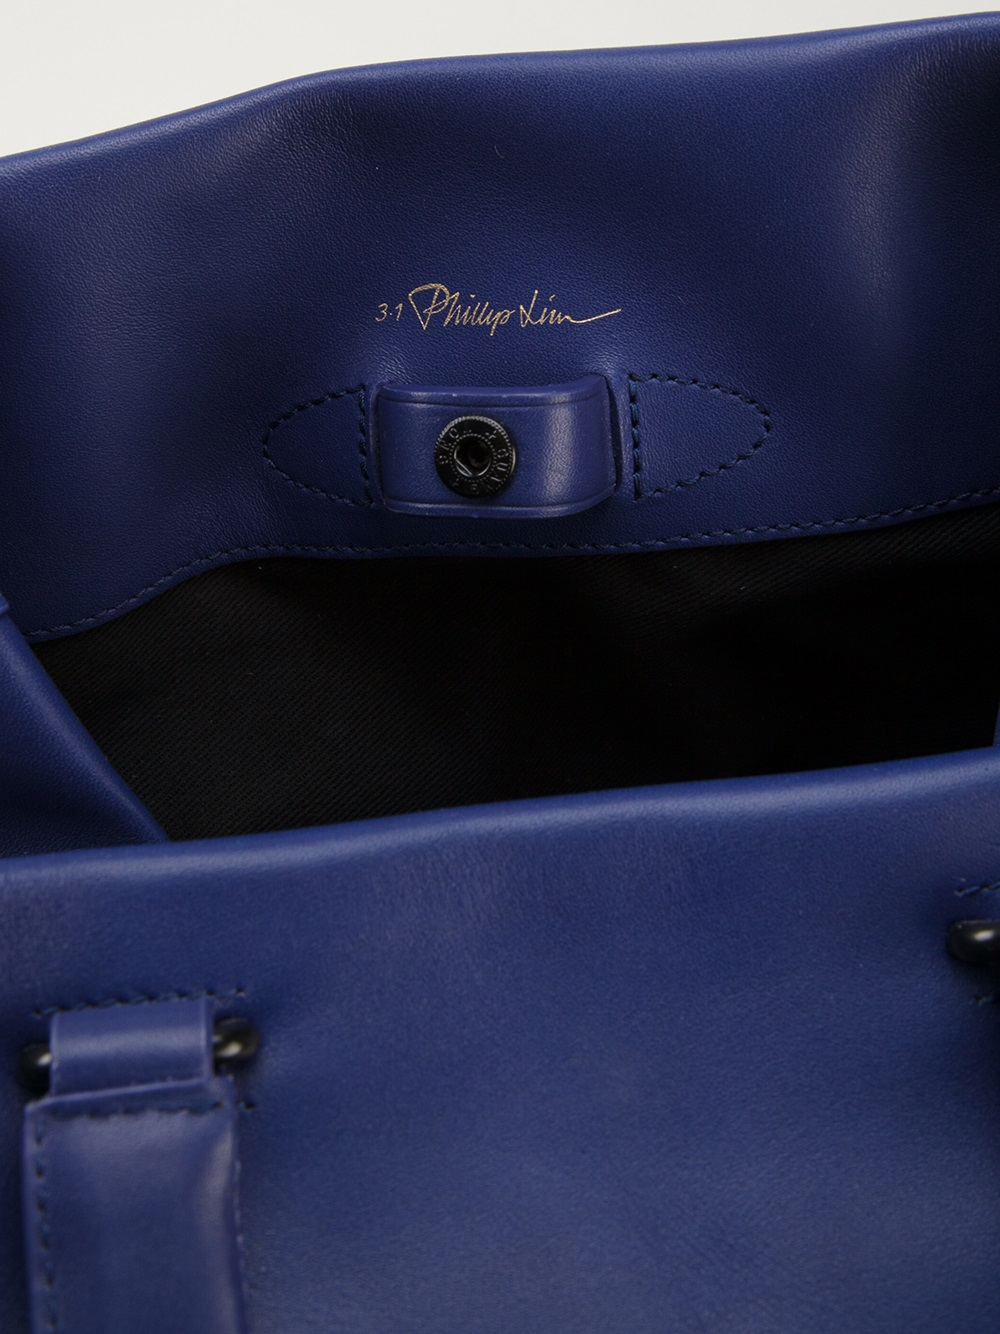 3.1 Phillip Lim Large Wednesday Tote in Blue